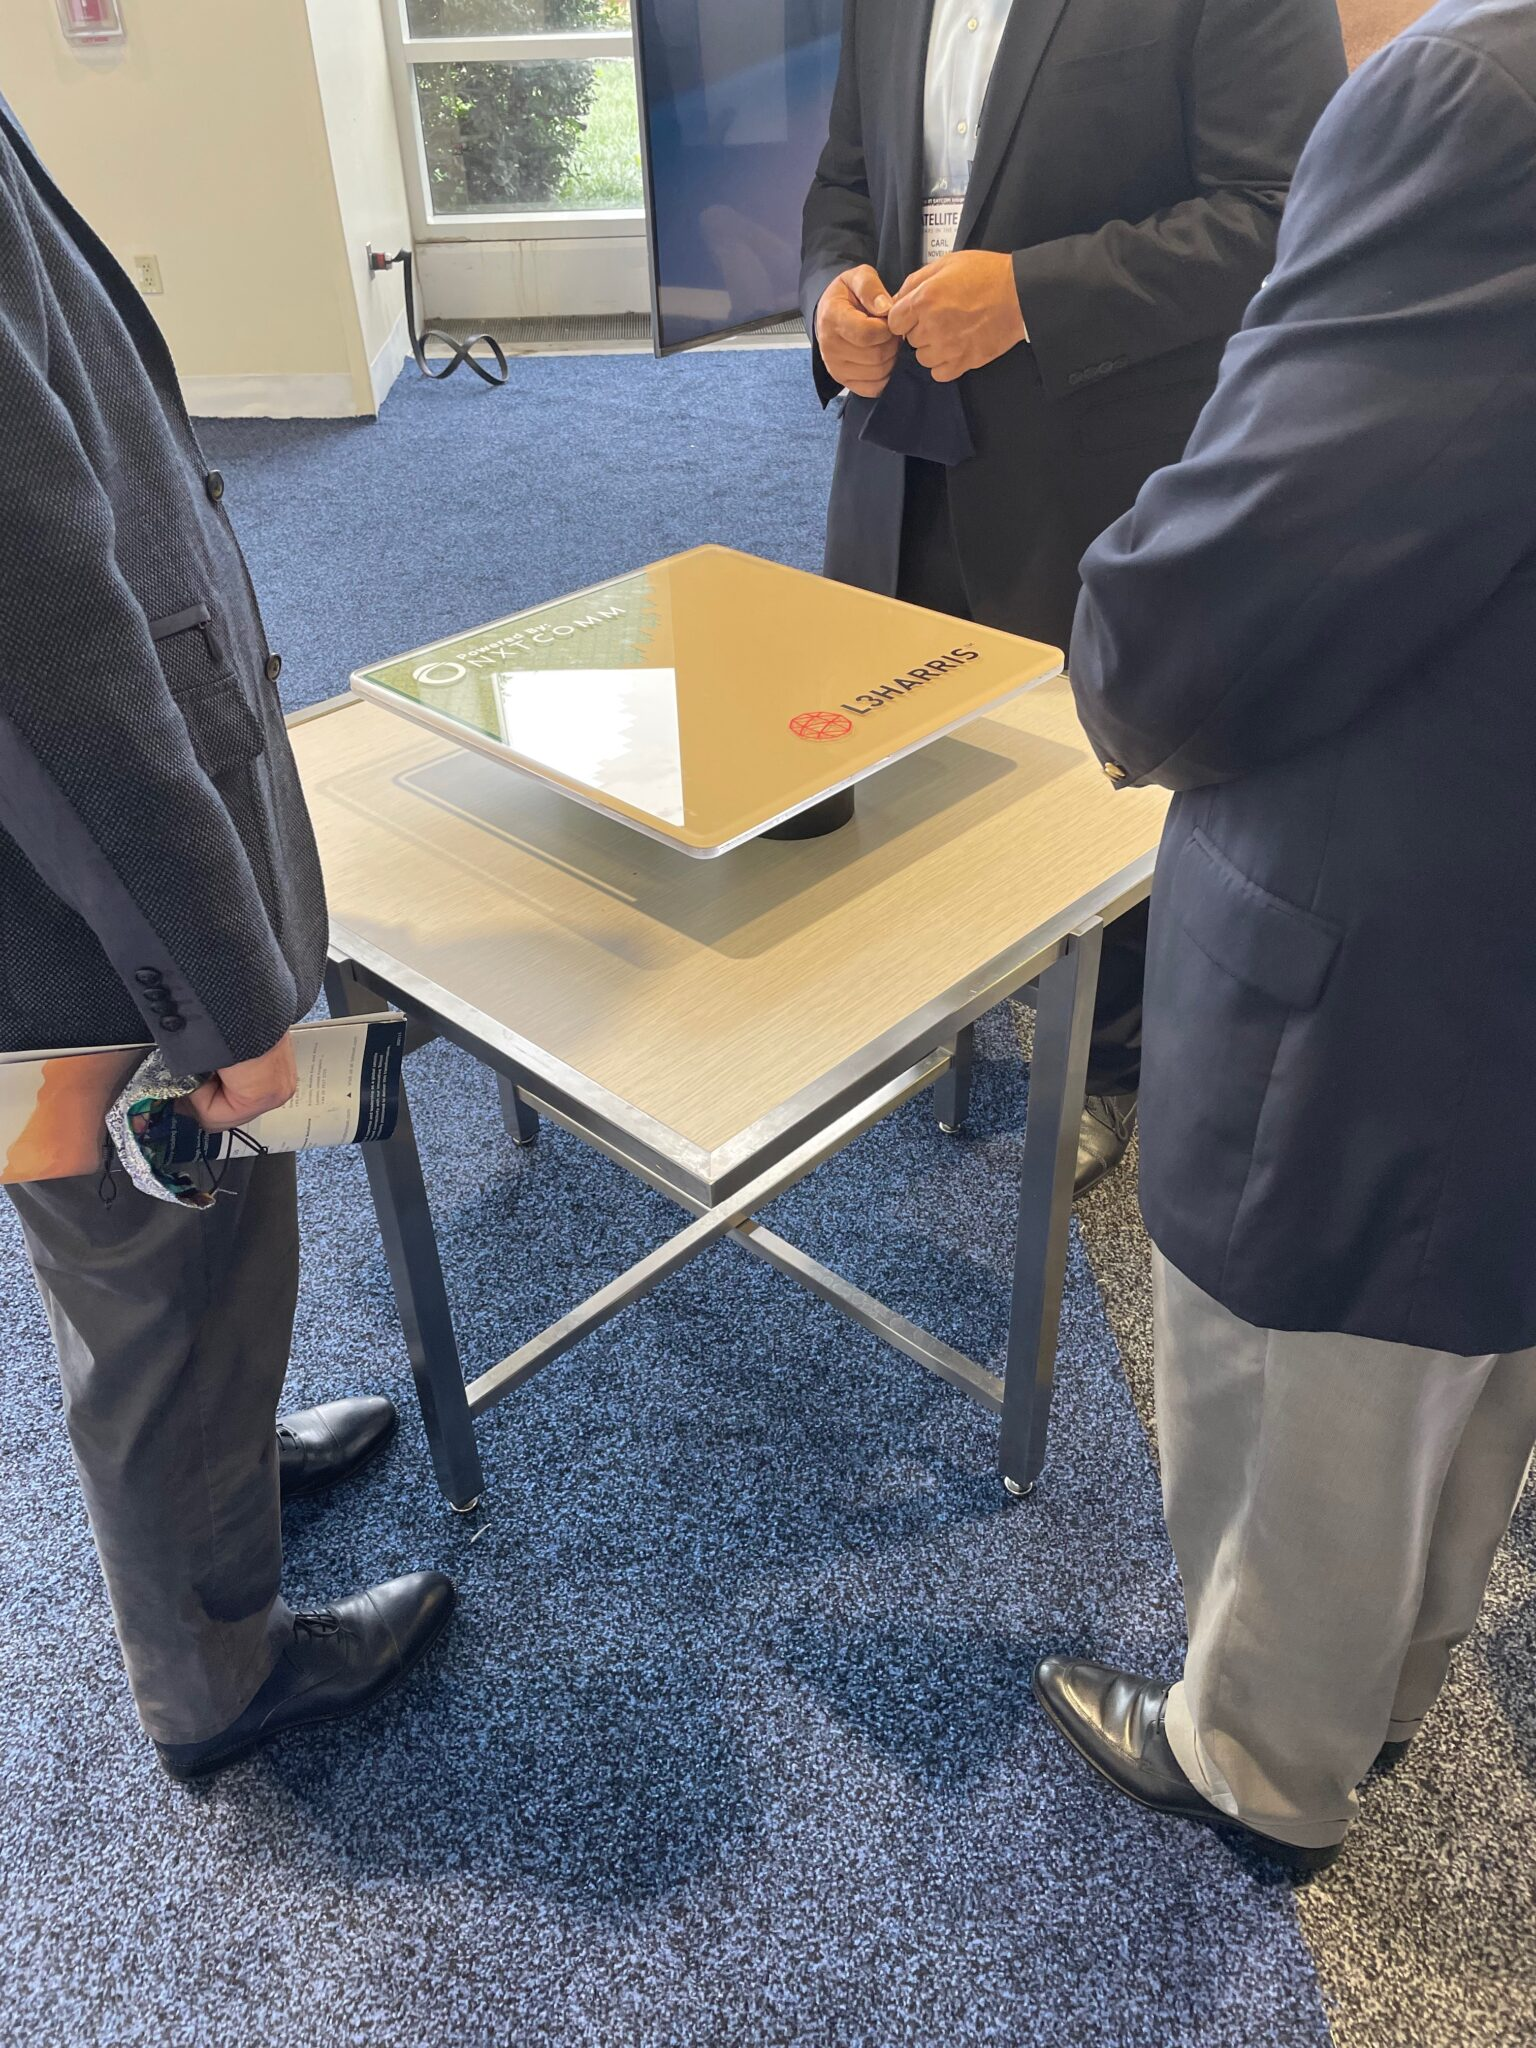 L3Harris antenna by NXTCOMM on display at Satellite Conference 2021